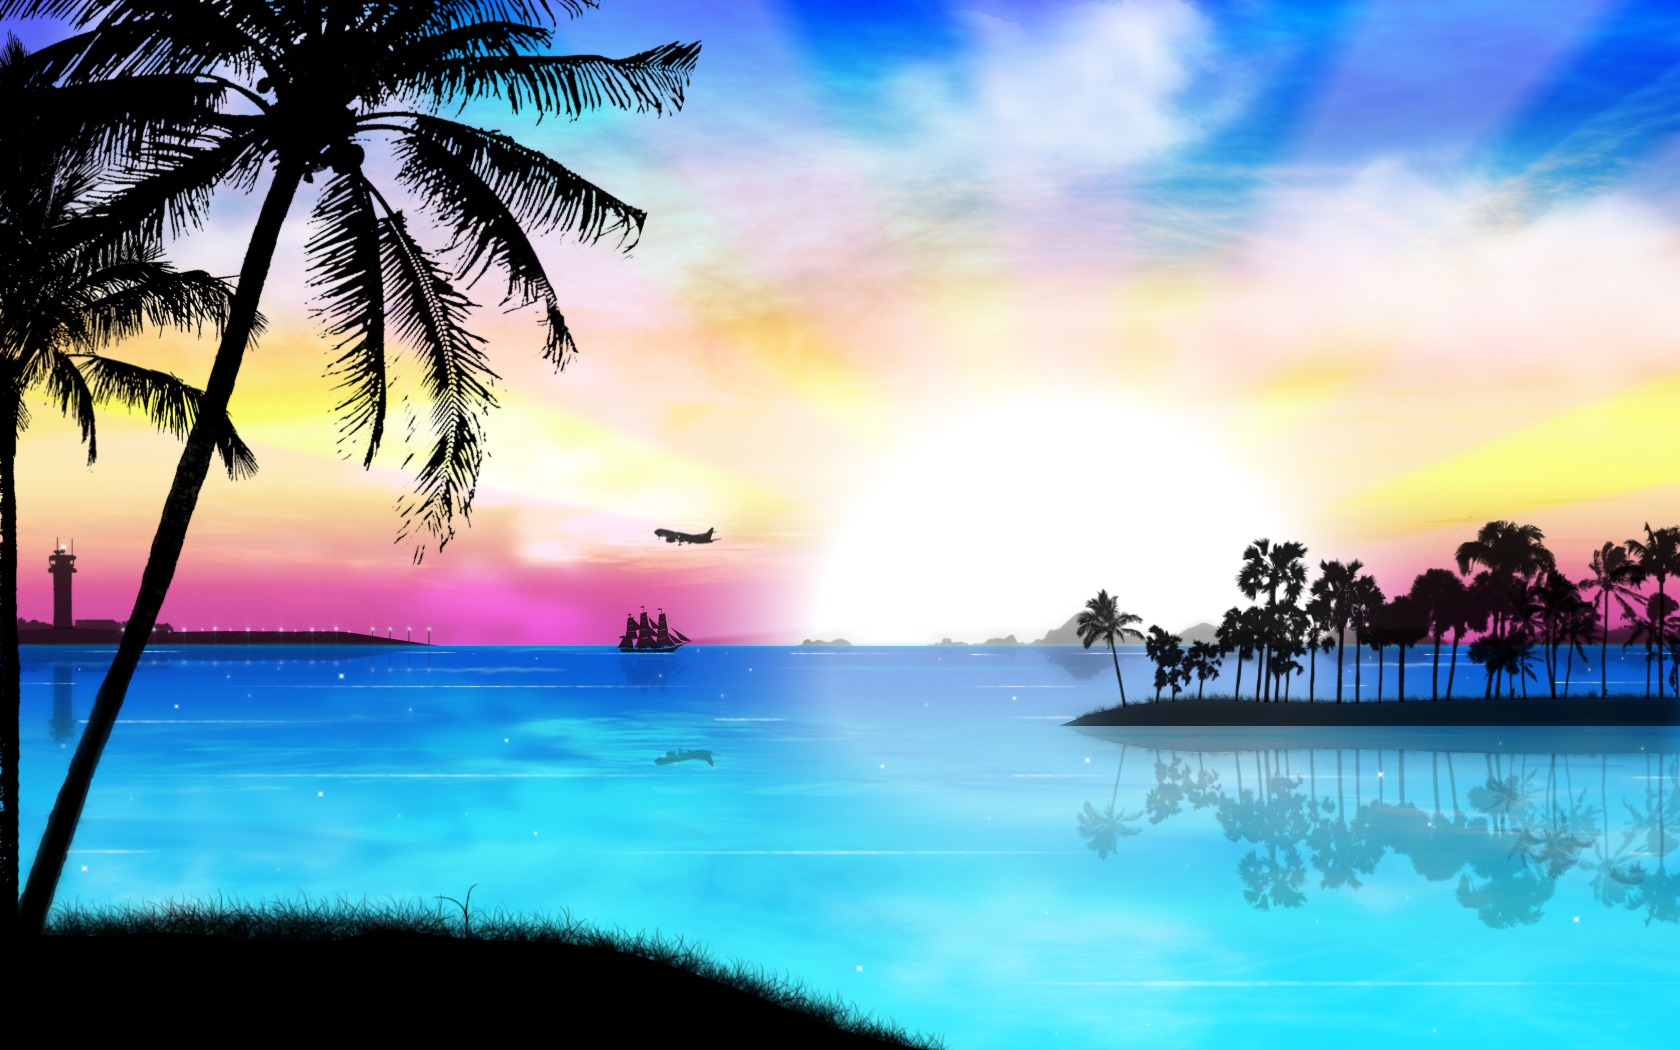 Hd Tropical Island Beach Paradise Wallpapers And Backgrounds: Tropical Sunset Wallpaper Desktop